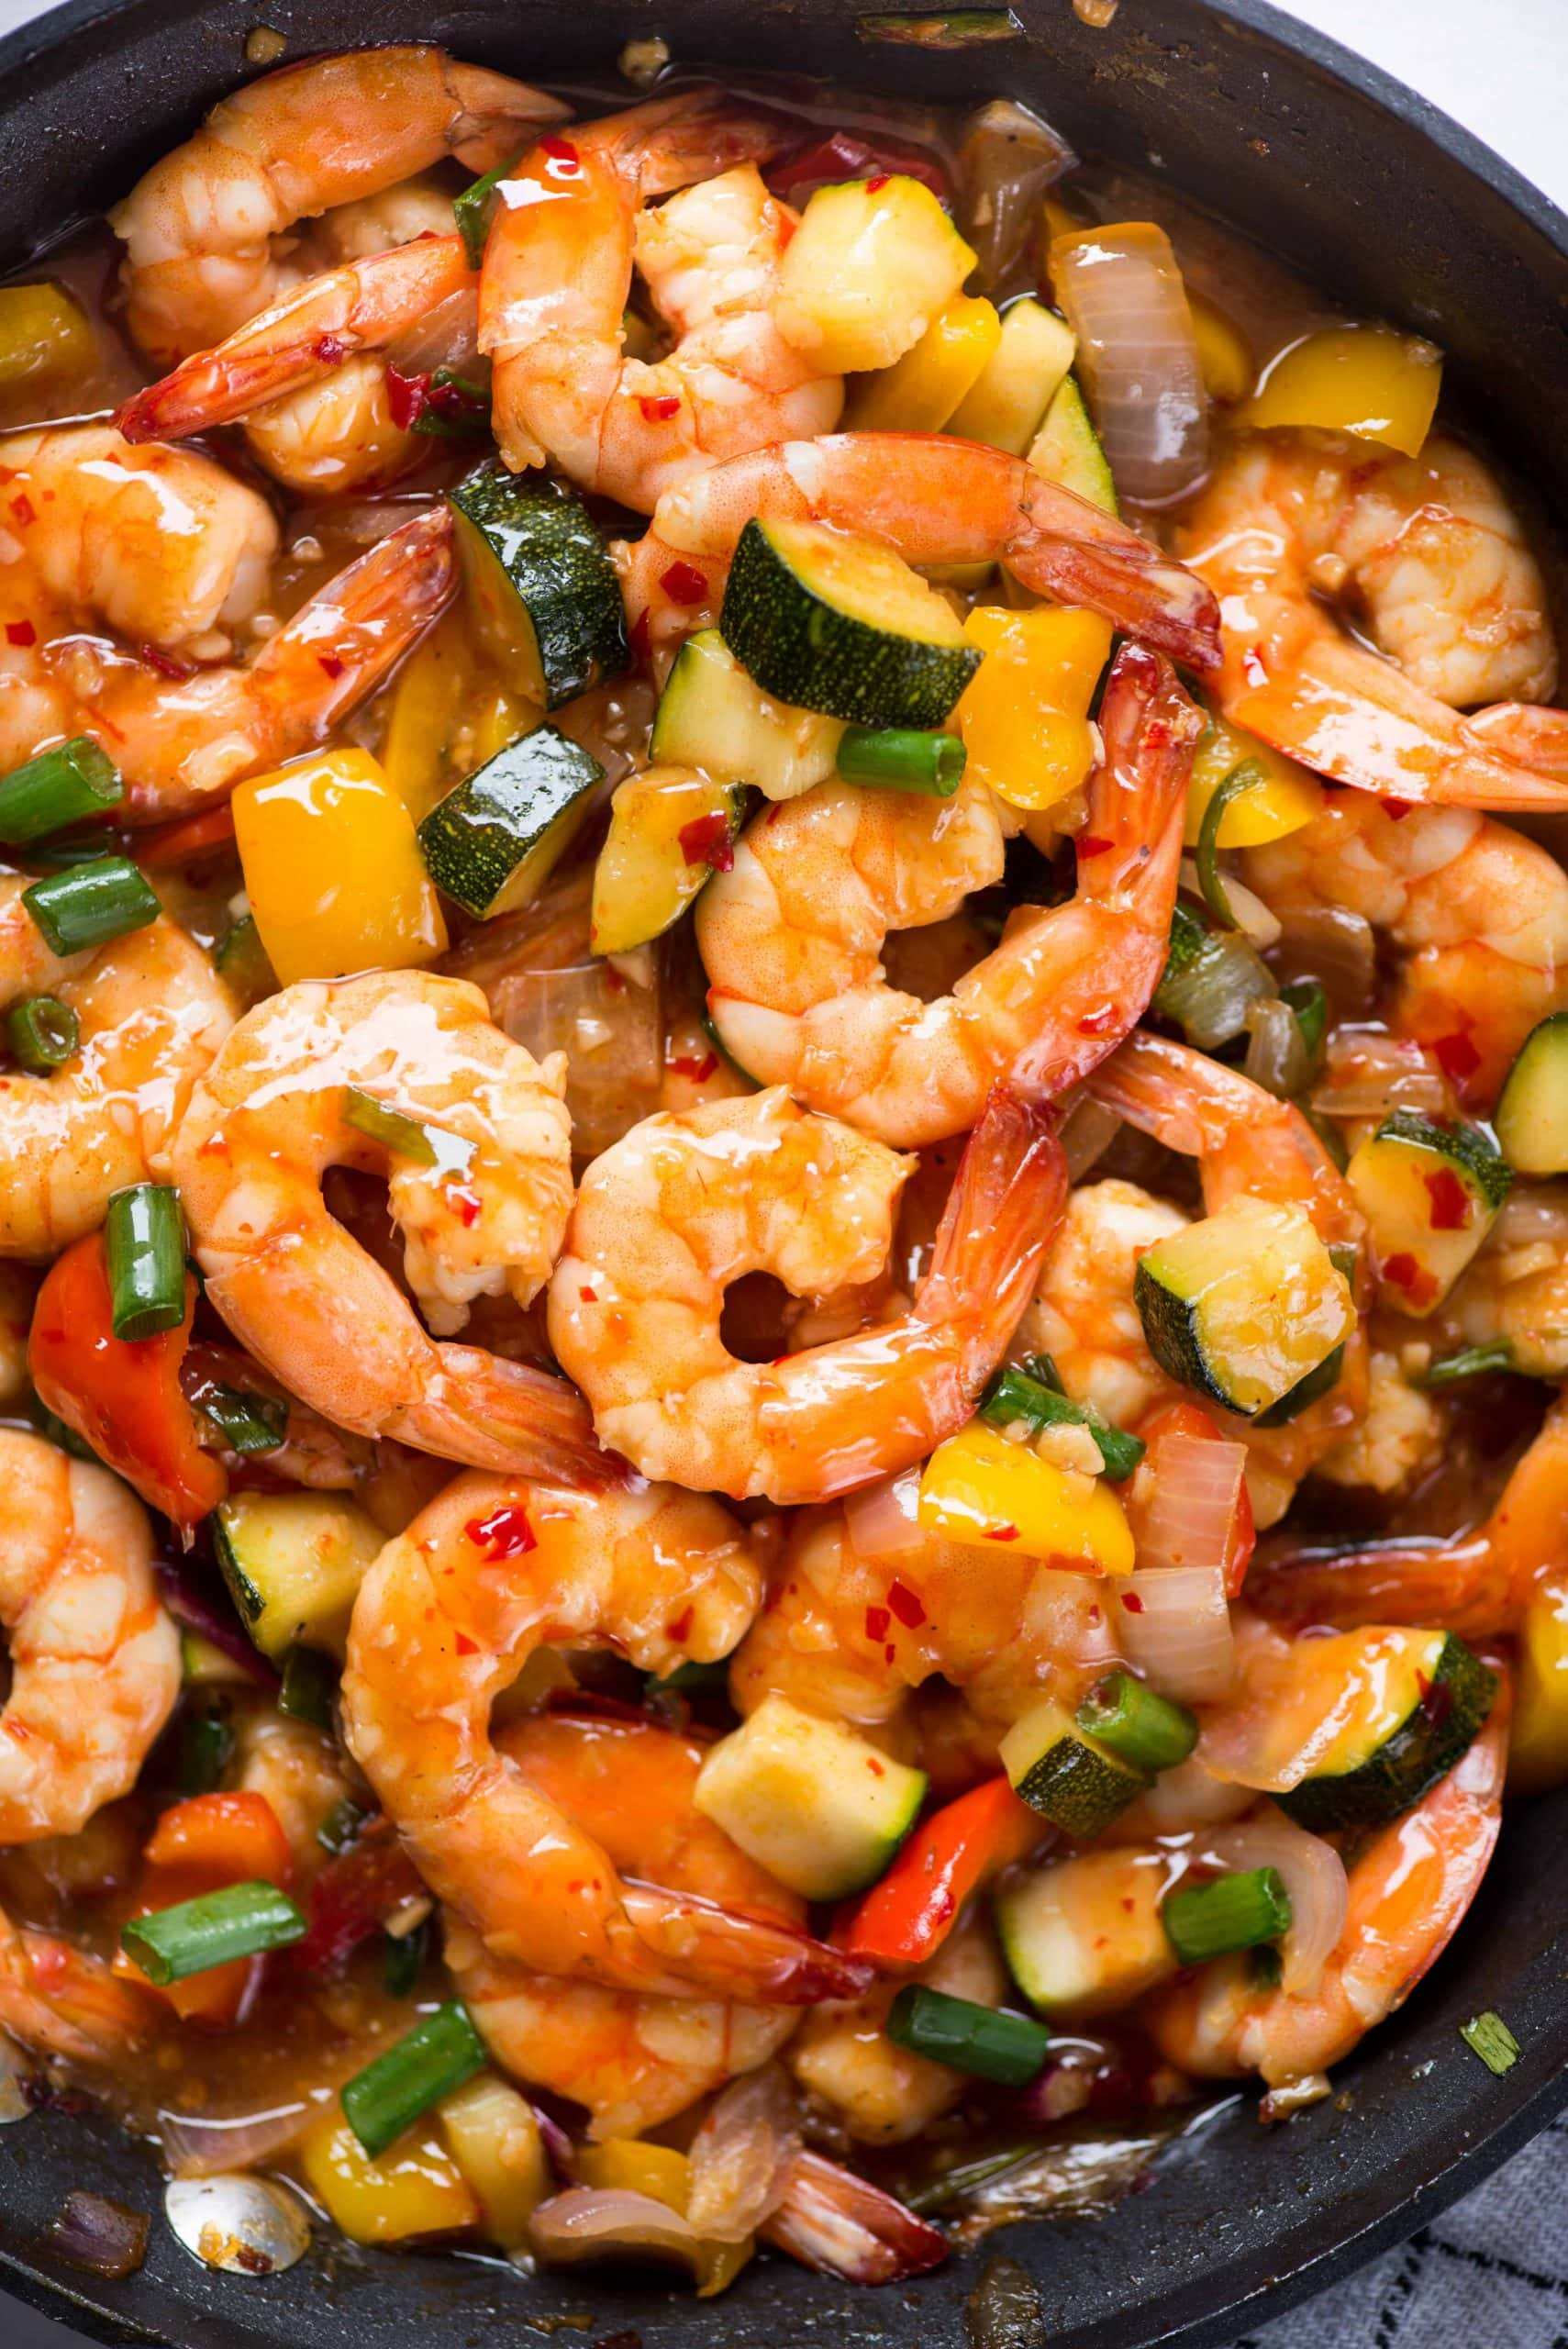 Quick and easy Shrimp stir fry with zucchini, pepper, and tossed in Thai Sweet chili Sauce. An easy 15-minute dish to serve with your favorite rice or noodles.